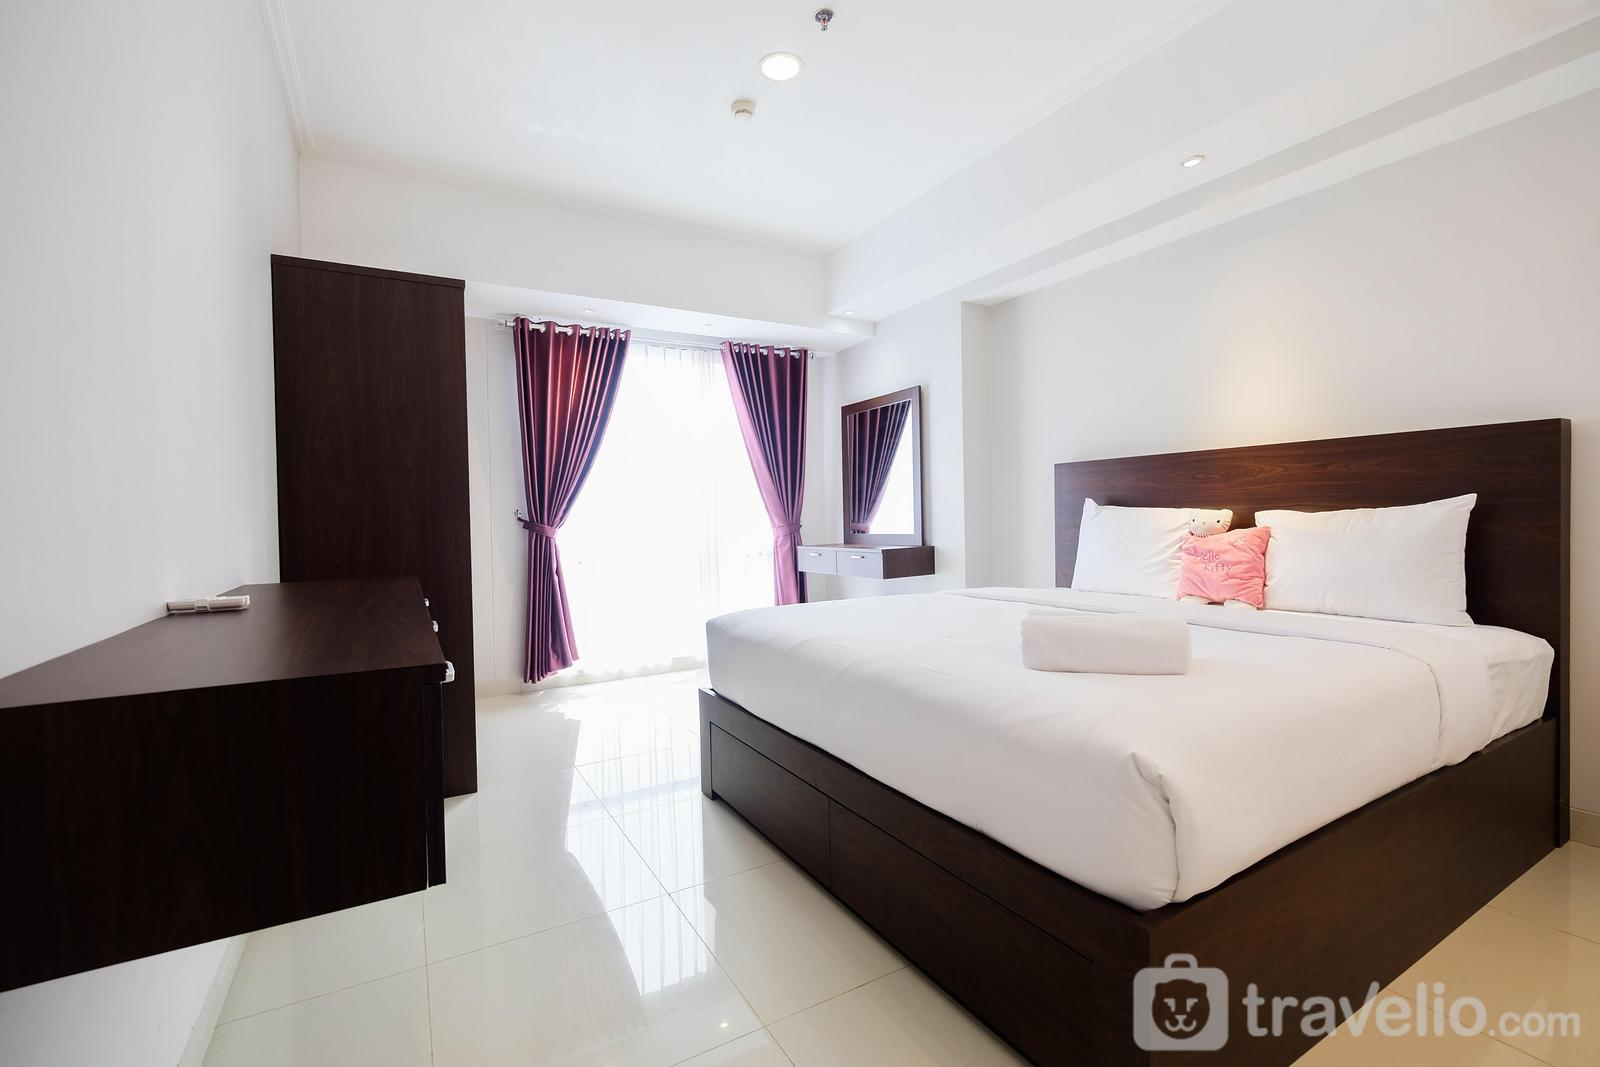 The Mansion Kemayoran - Classy 2BR The Mansion Apartment near JIEXPO By Travelio